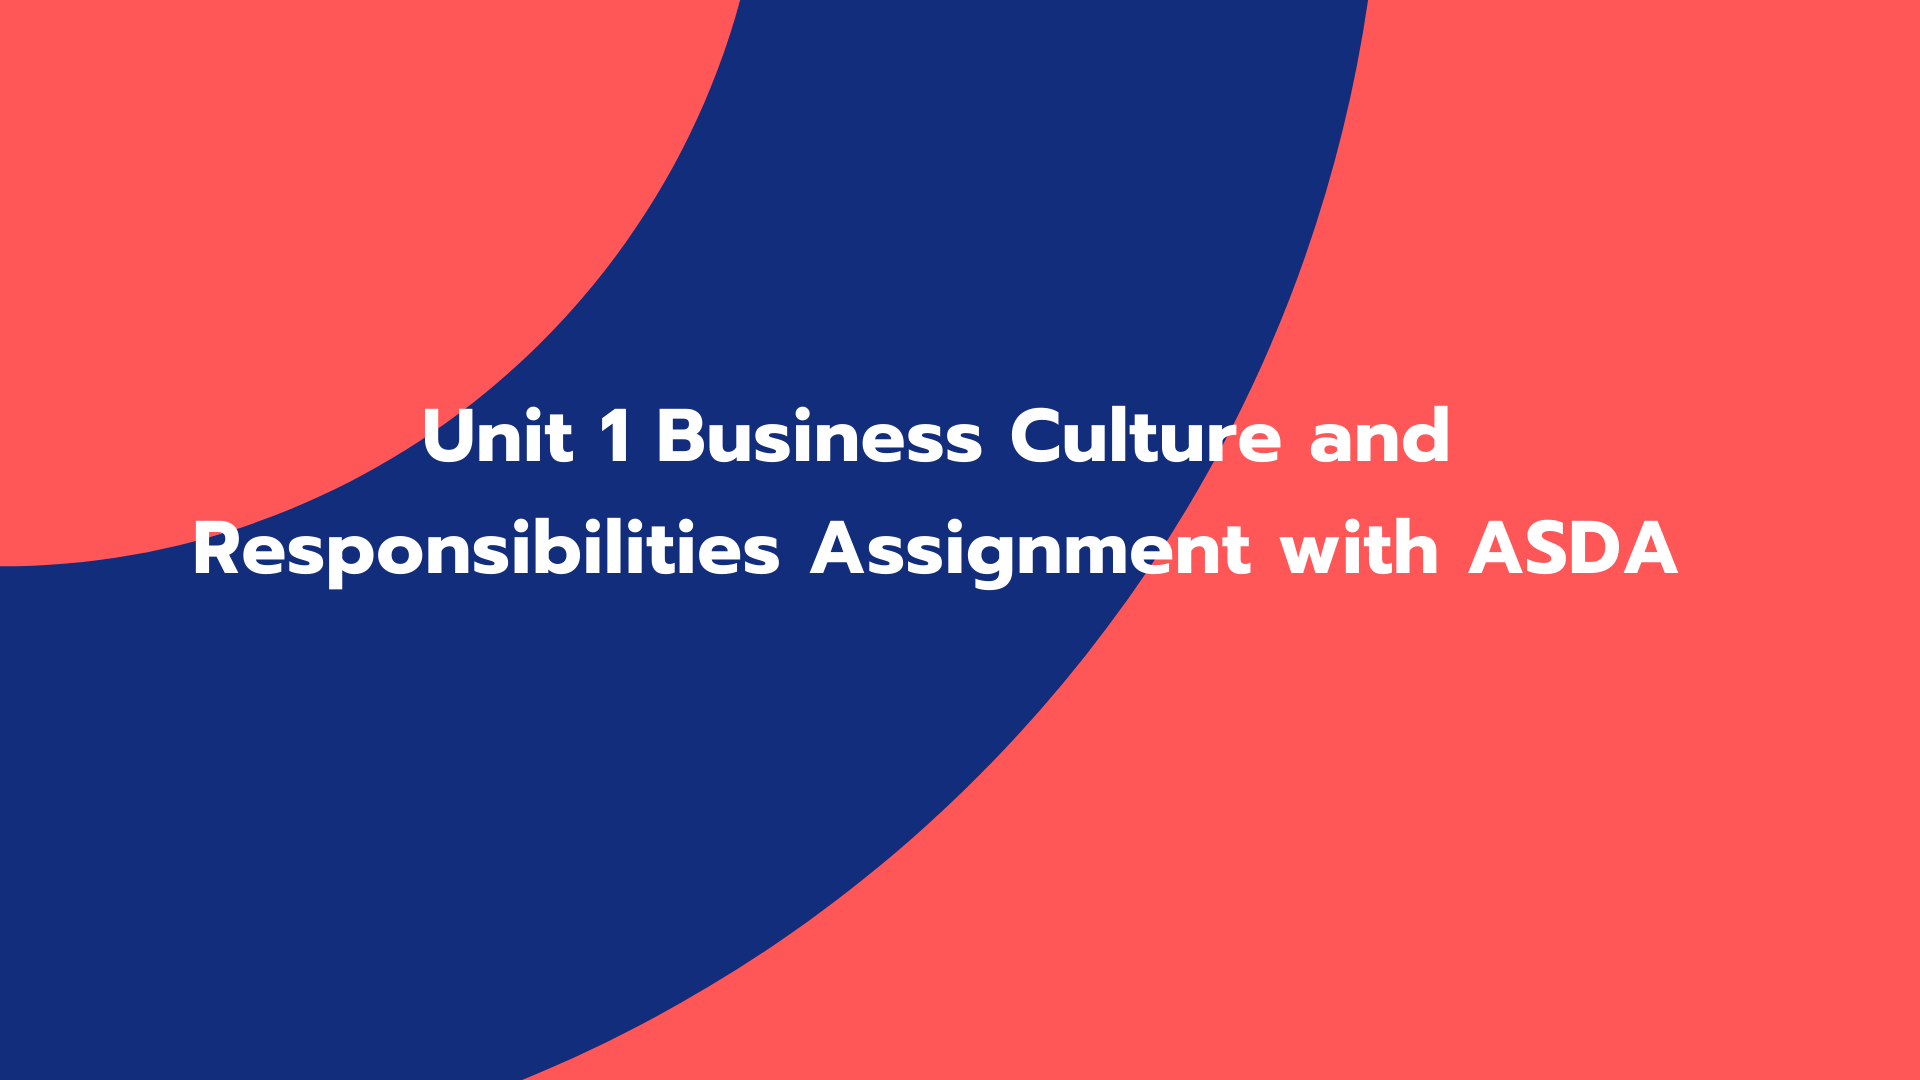 Unit 1 Business Culture and Responsibilities Assignment with ASDA